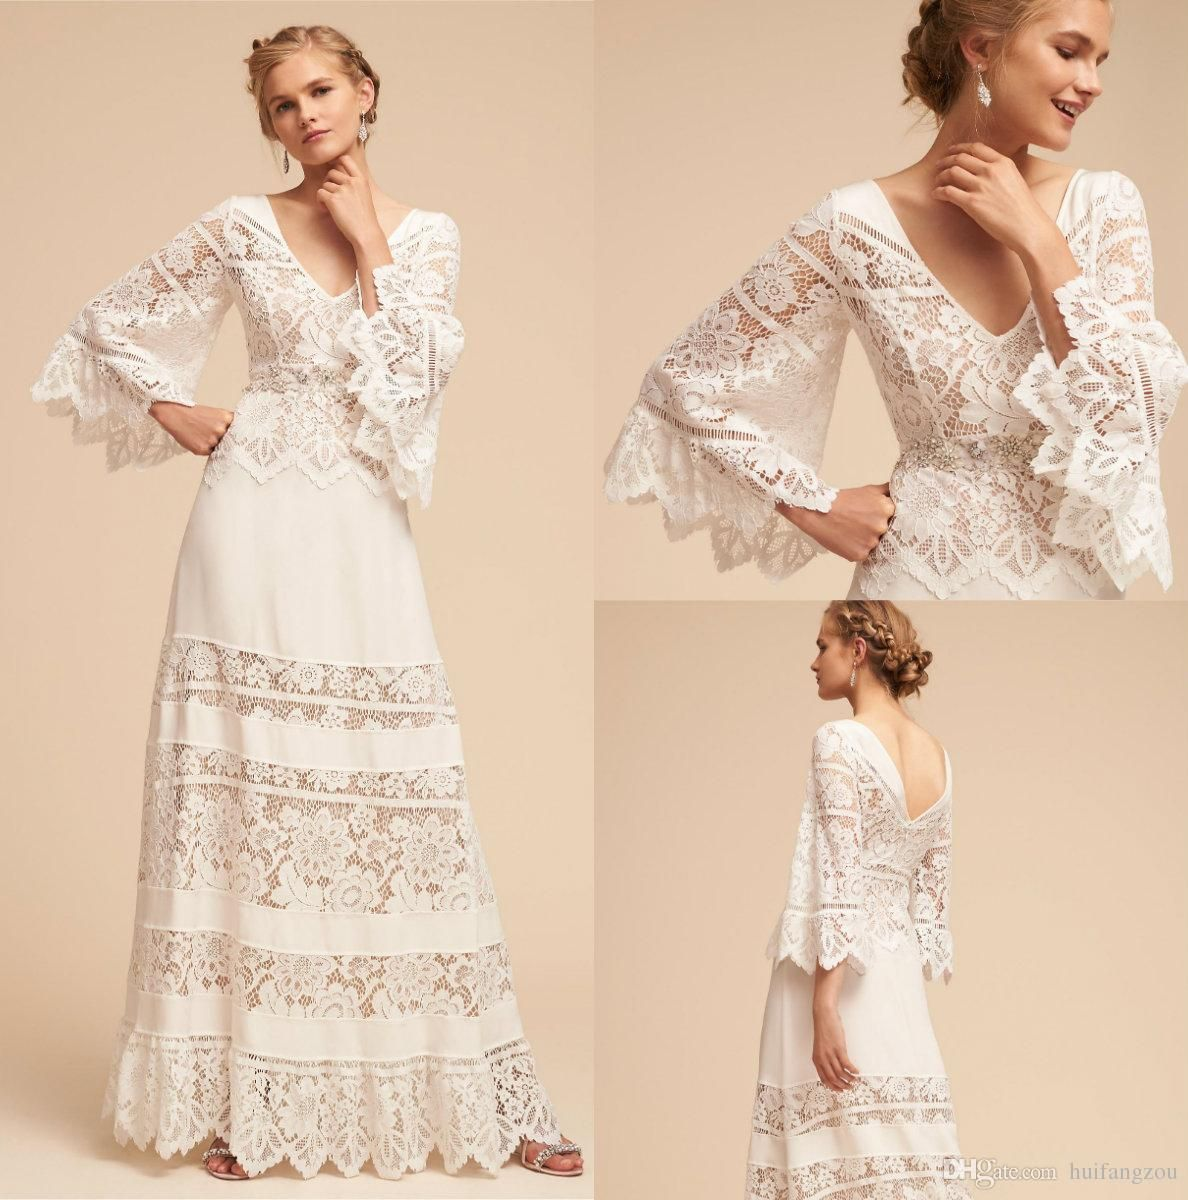 Discount 2018 Plus Size Bhldn Wedding Dresses Lace Bell